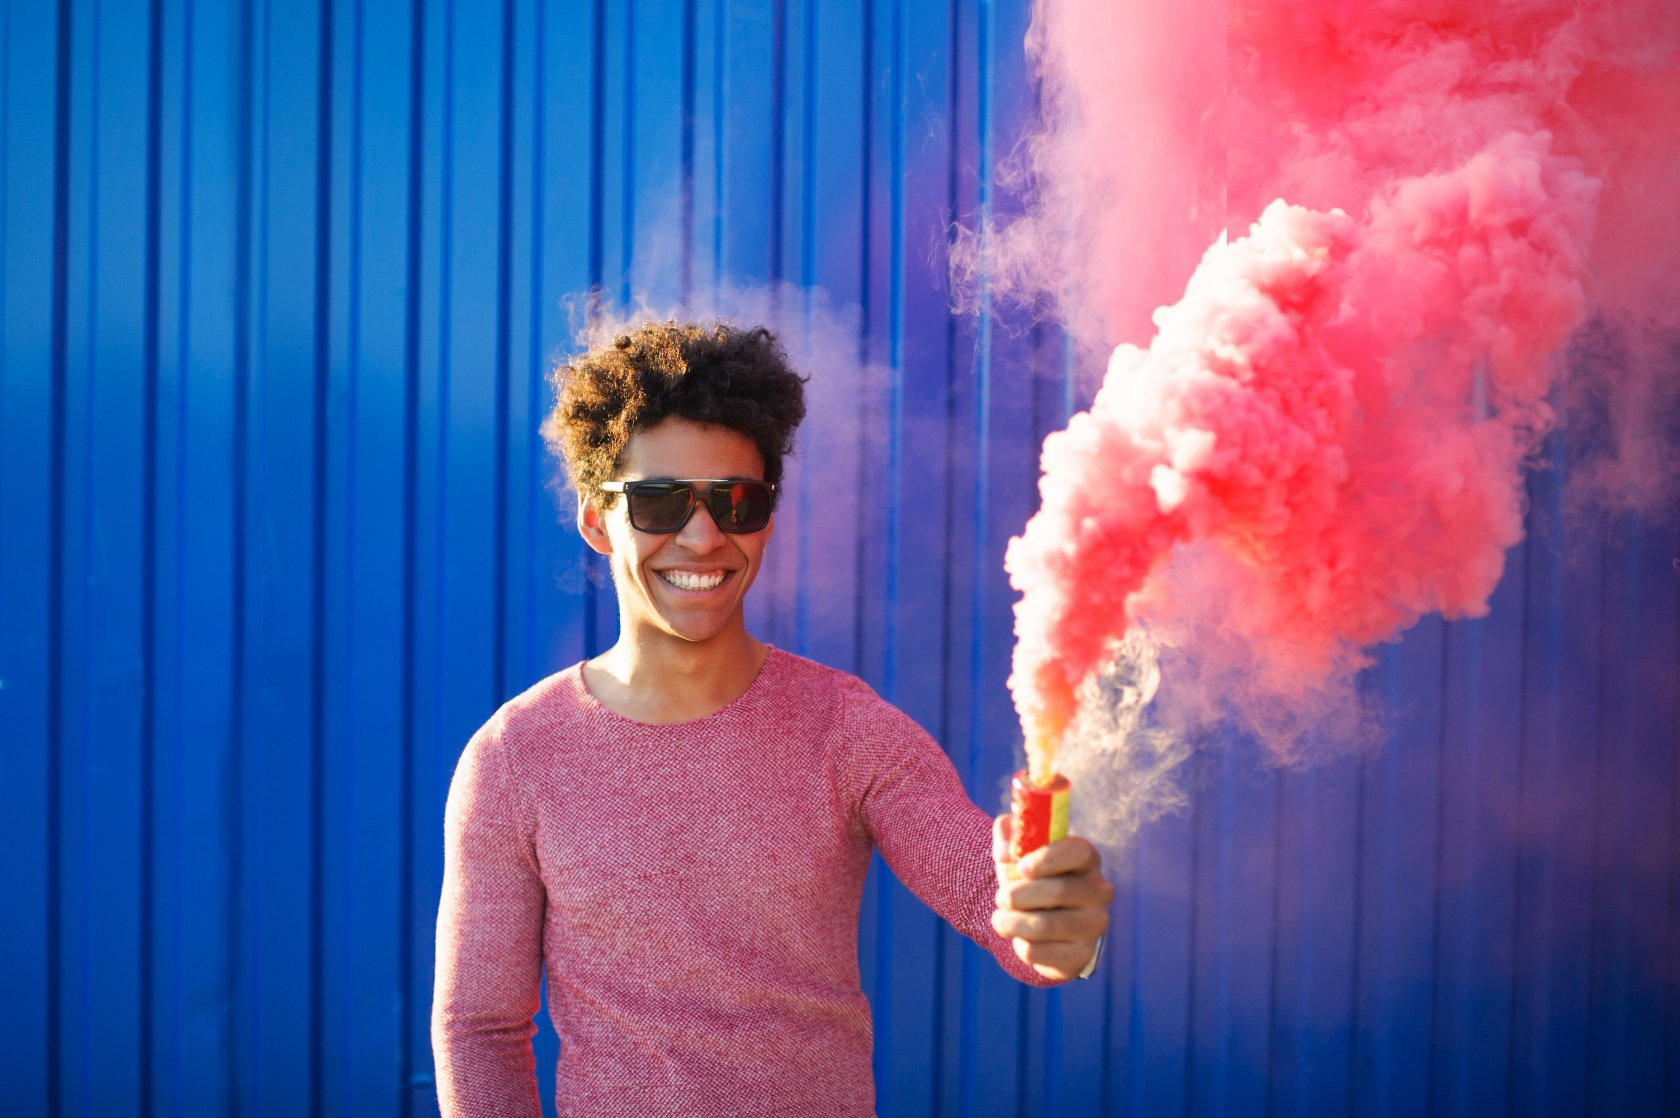 Smoke Bomb Photography You Can Master Quickly and Easily Image8